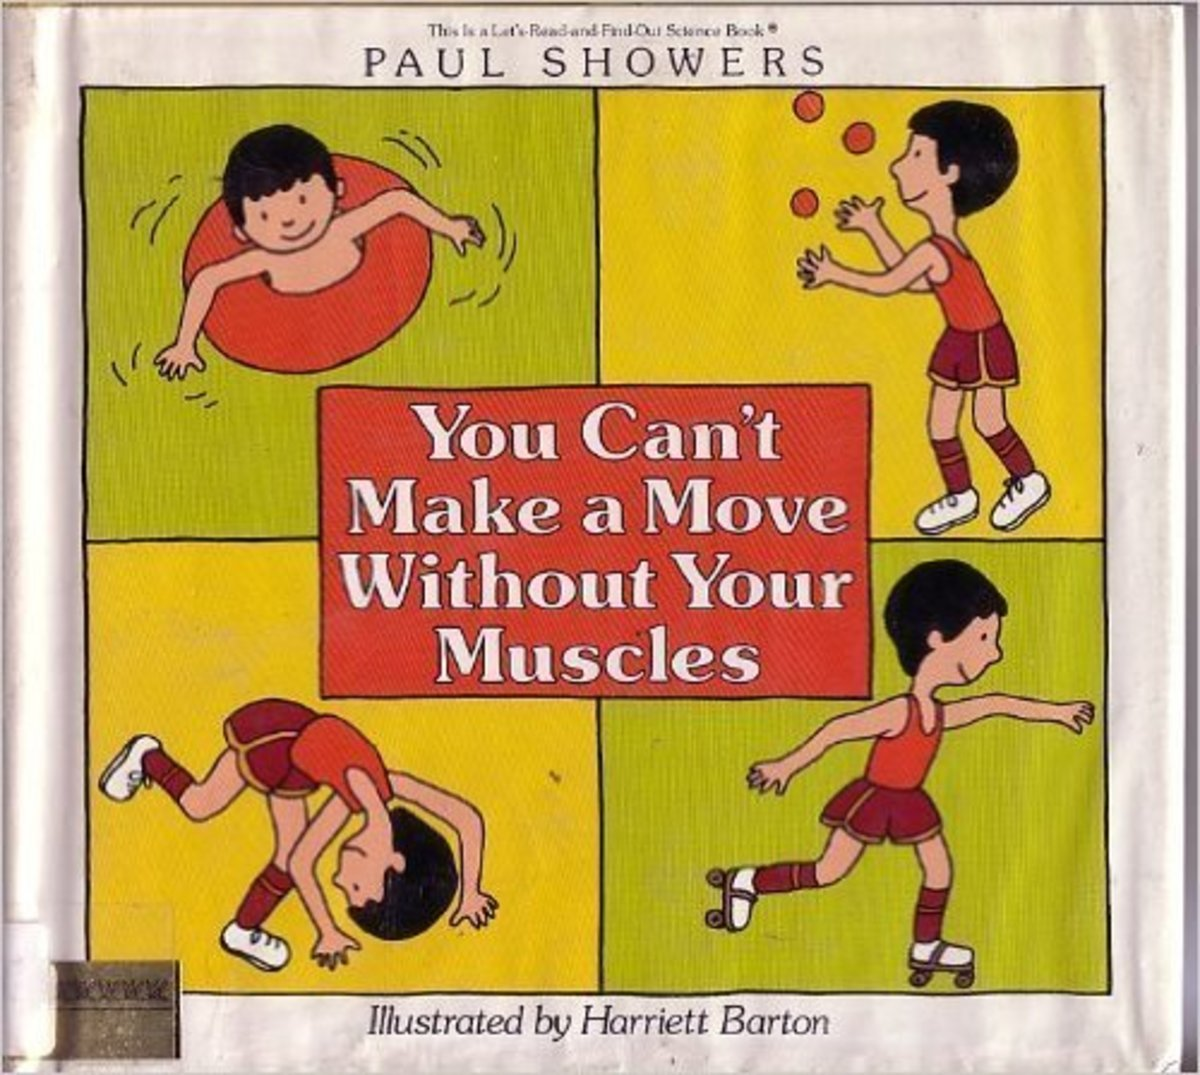 You Can't Make a Move Without Your Muscles (Let's-Read-and-Find-Out Science Book) by Paul Showers